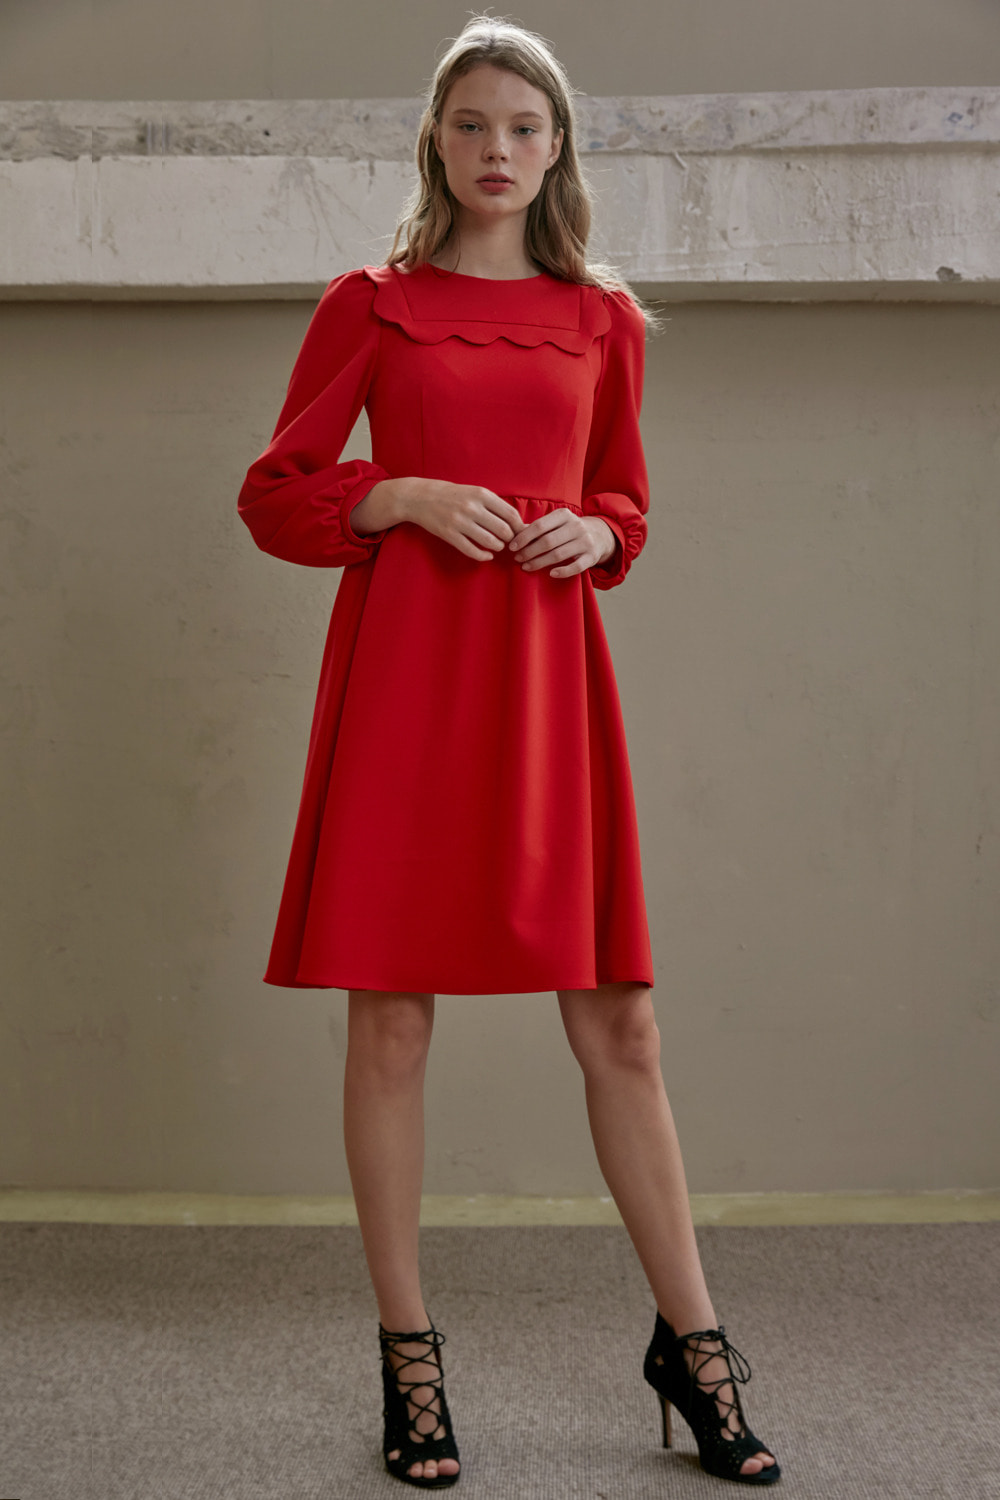 Scallop detail red dress